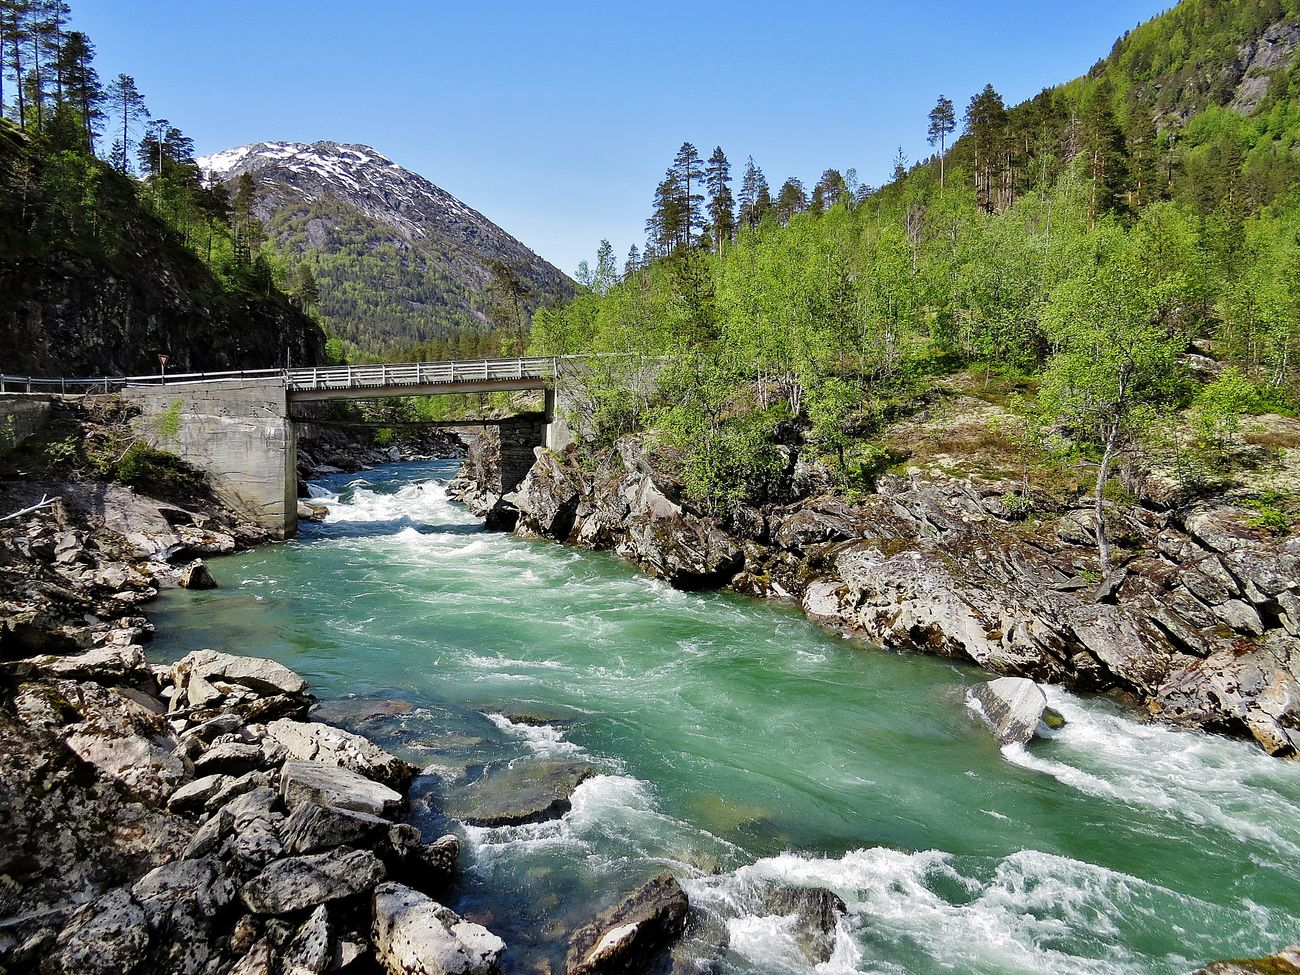 Beauty In Nature Bridge - Man Made Structure Bridges Clear Sky Day Glacier River Jostedalen Luster Motion Mountain Nature Outdoors River River Collection Riverporn Riverside Rock - Object Scenics Sky Sogn Og Fjordane Tranquil Scene Tranquility Tree Water Waterfall